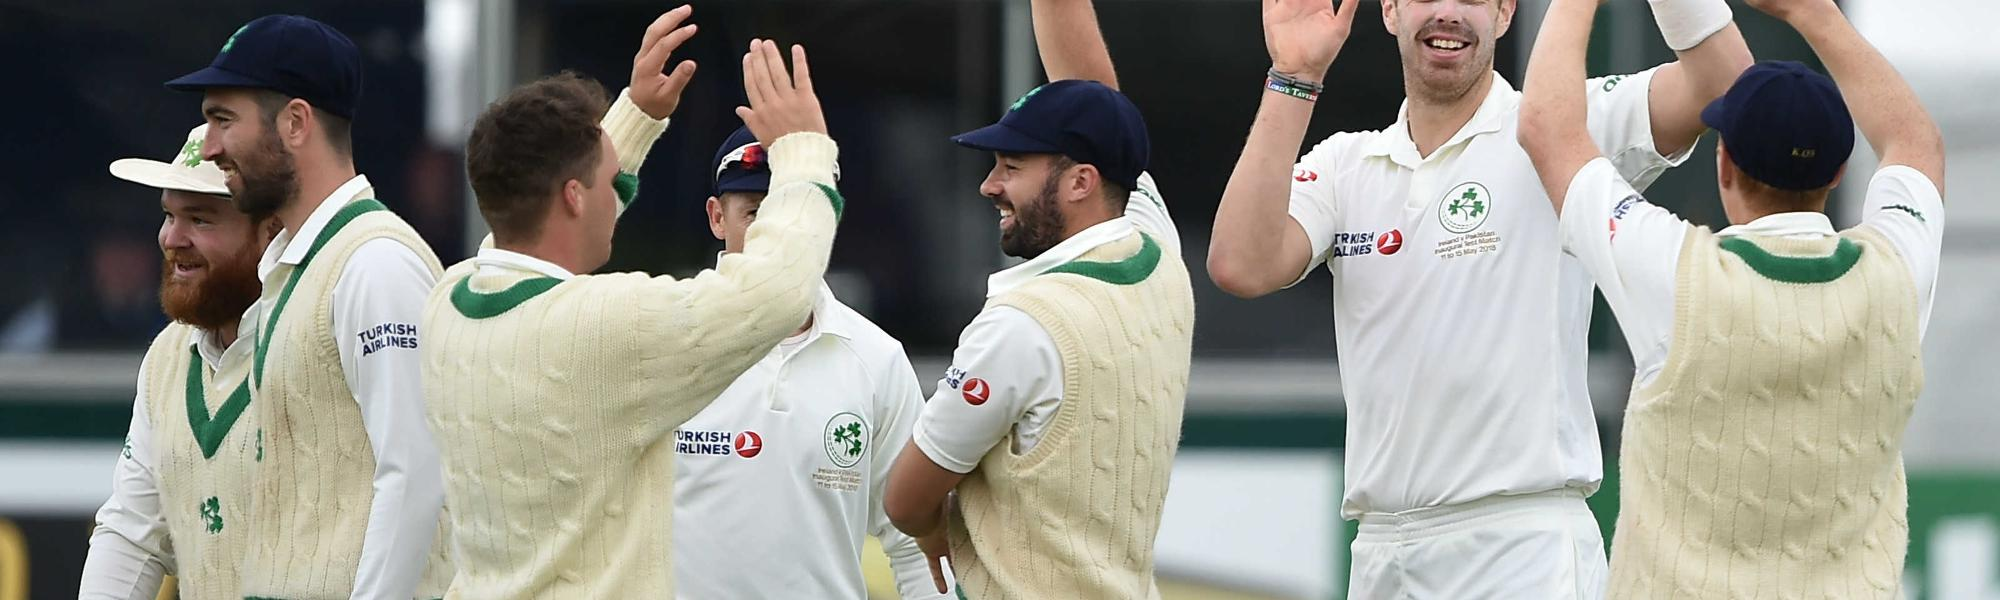 Ireland gave Pakistan a scare when they had the visitors down at 14/3 in the second innings